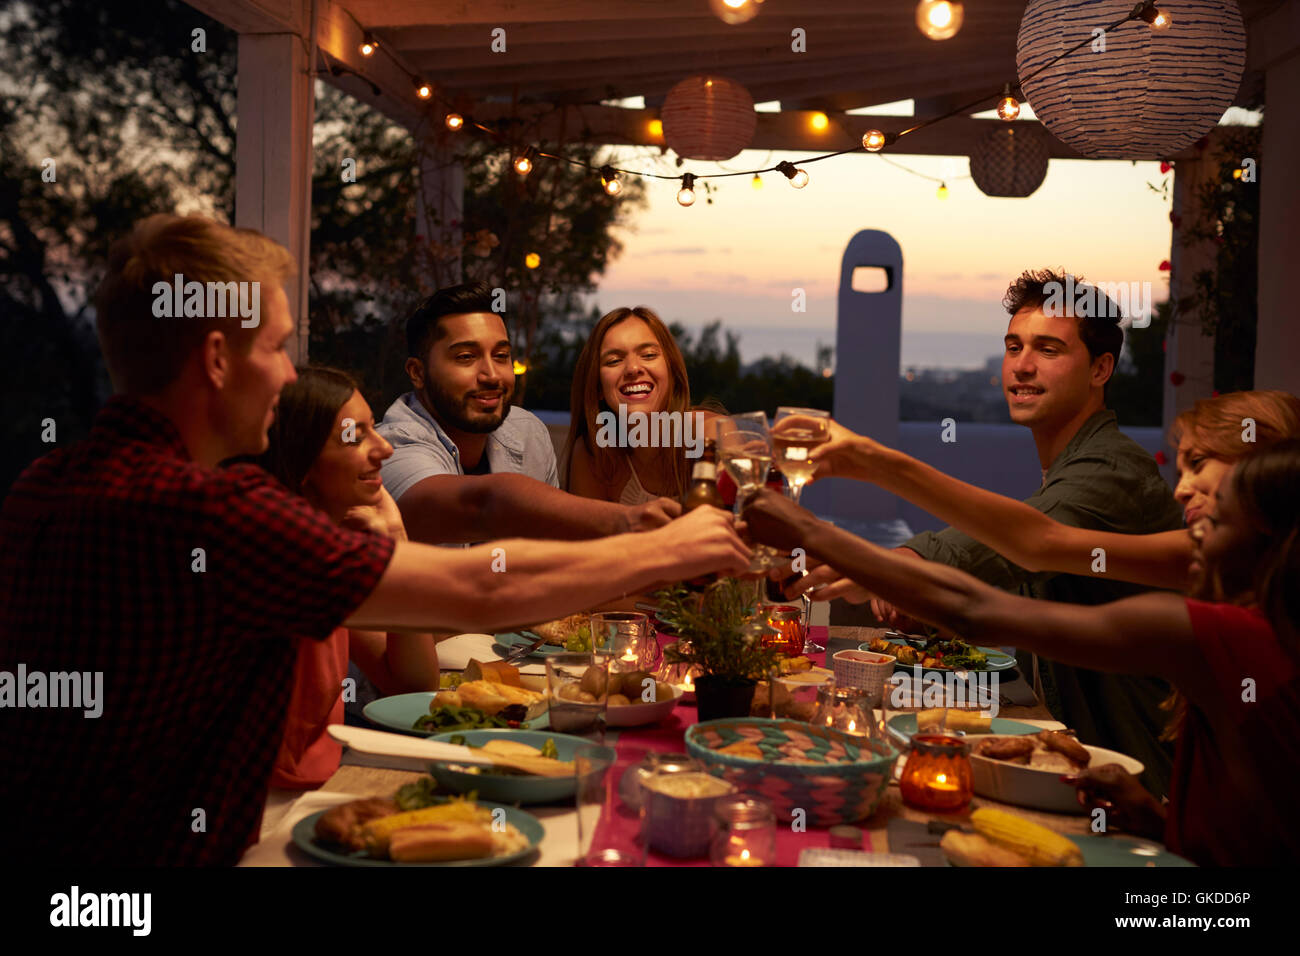 Friends Make A Toast At A Dinner Party On A Patio Close